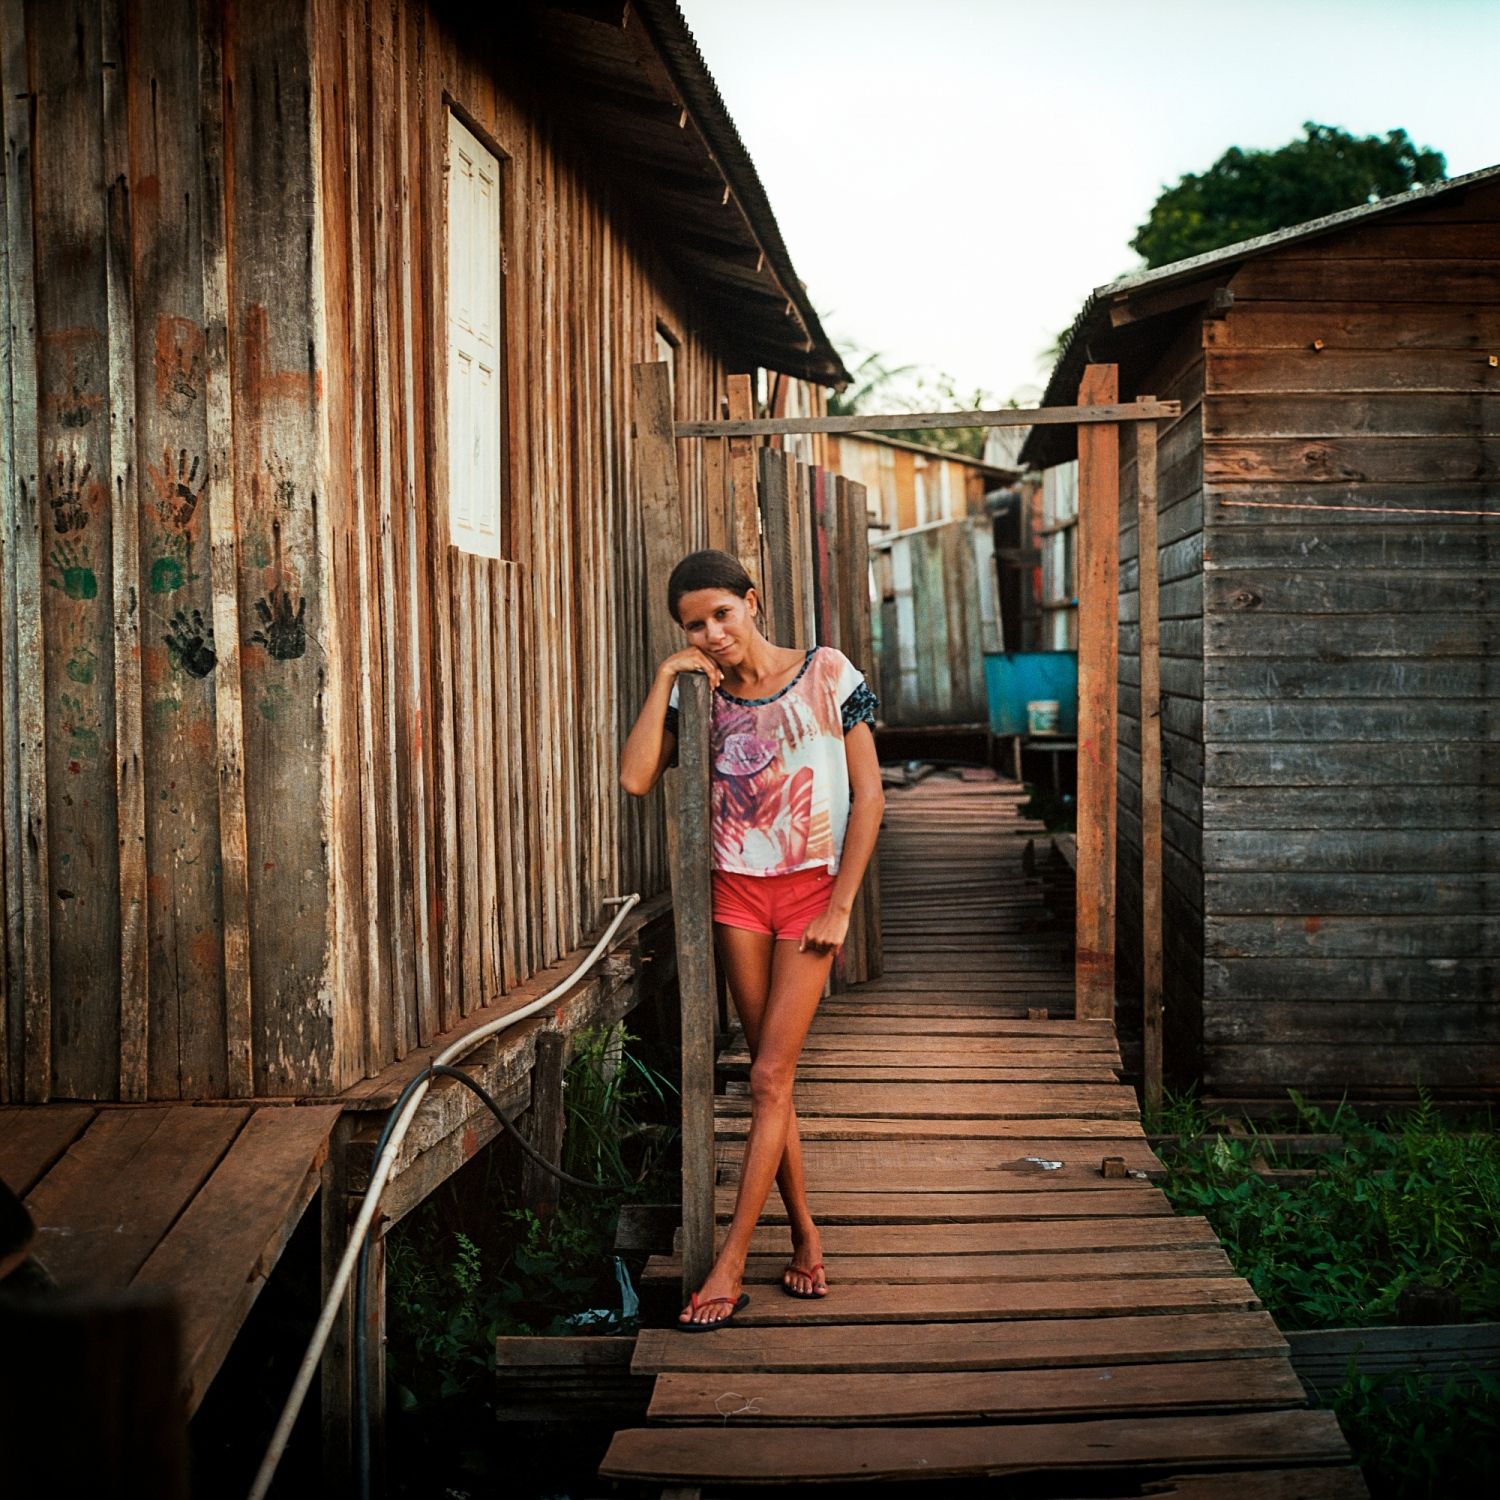 2017. Kaciani da Silva lives in the slum neighbourhood of Palaffitas in the city of Altamira, Para, Brazil. The neighbourhood is built on a lagoon that is now rising and flooding homes to a degree that had never been seen before the construction of the Belo Monte Dam. Norte Energia, the consortium responsible for the dam, denies that the dam is resposible for the flooding.  /Aaron Vincent Elkaim